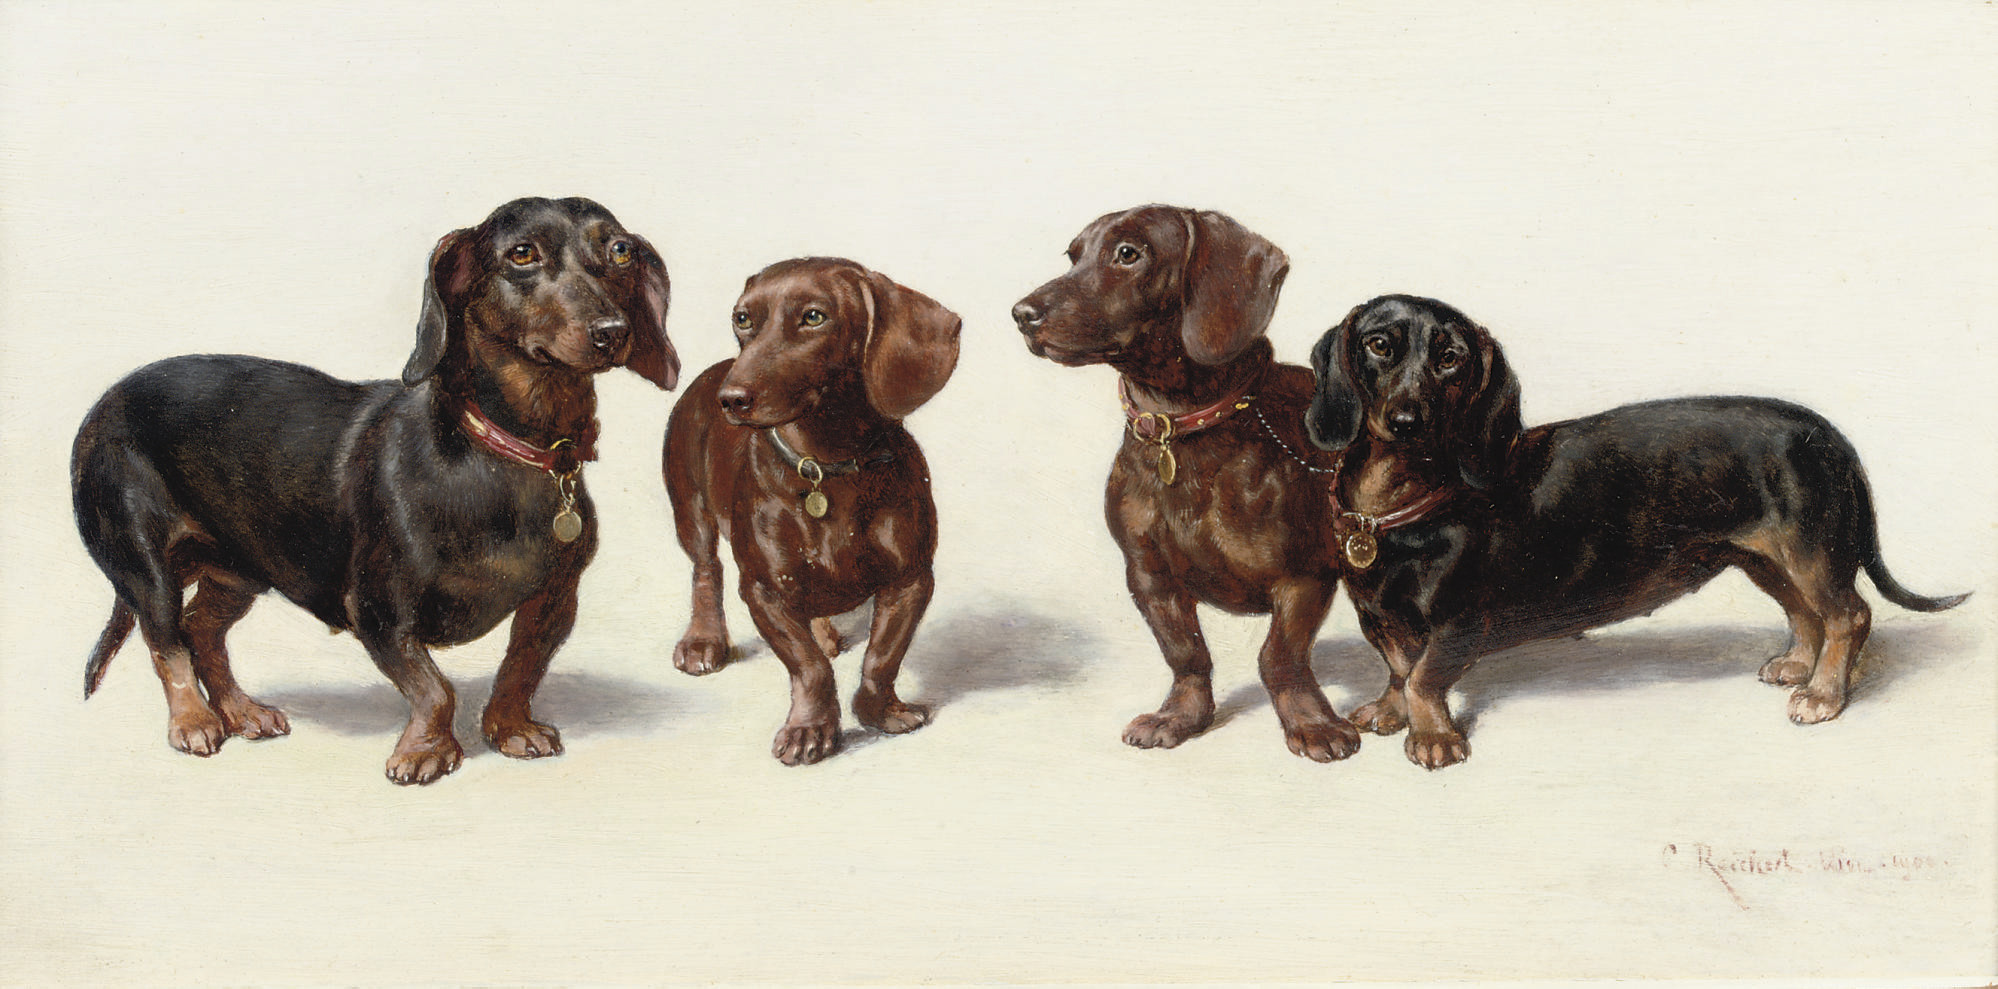 Four Dachshunds